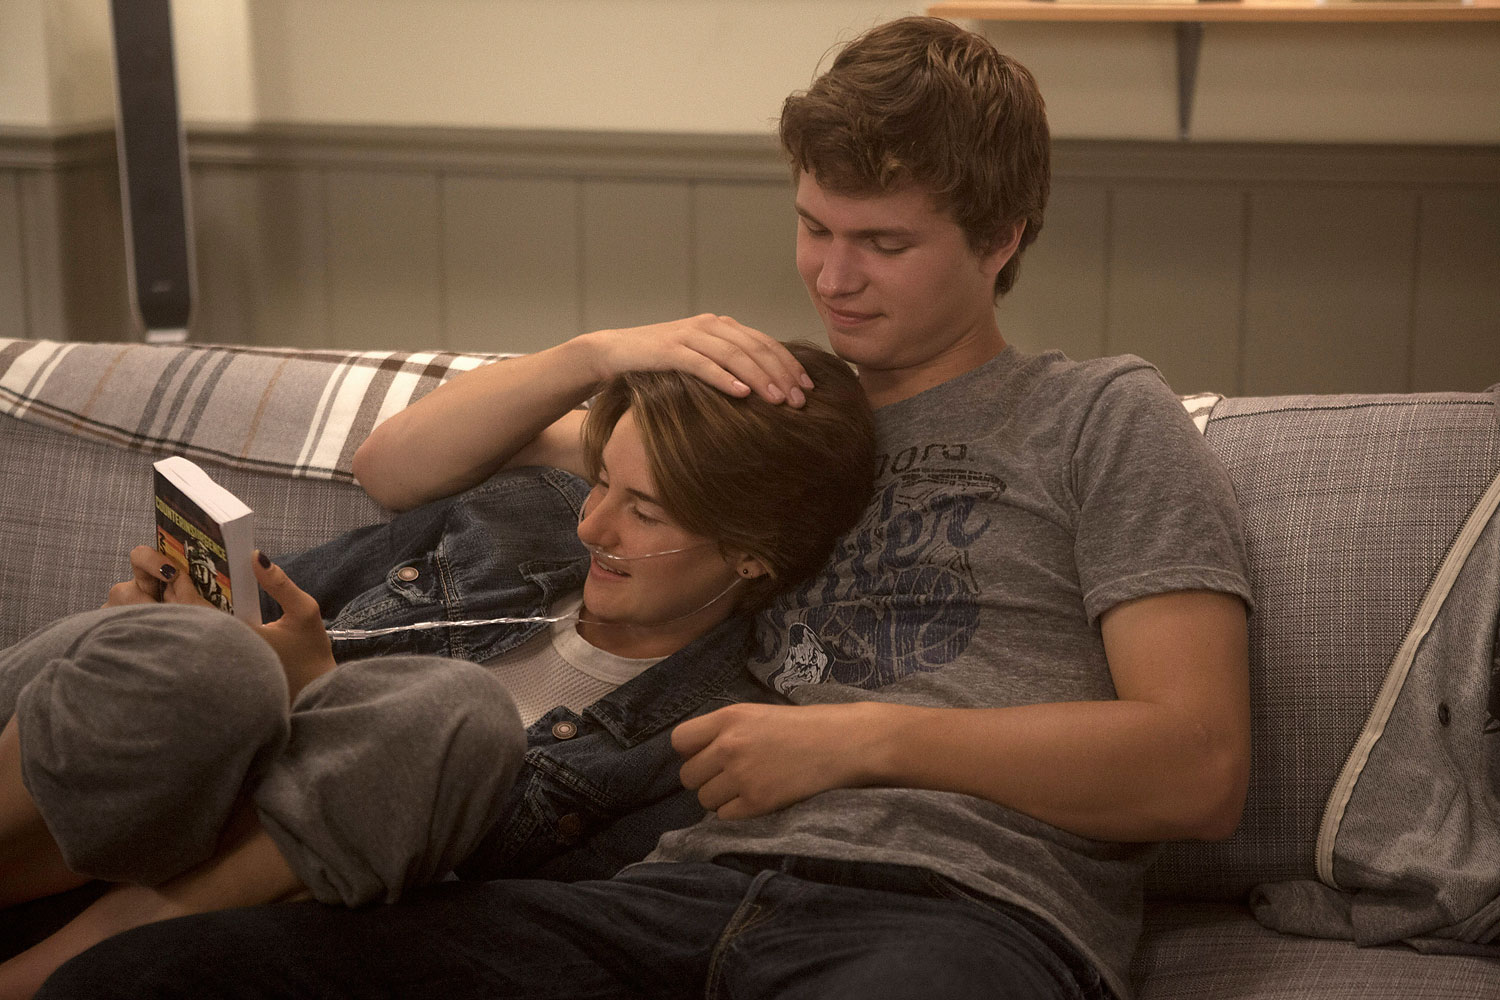 Films about cancer, such as 'The Fault in Our Stars,' can offer a new understanding of humanity.